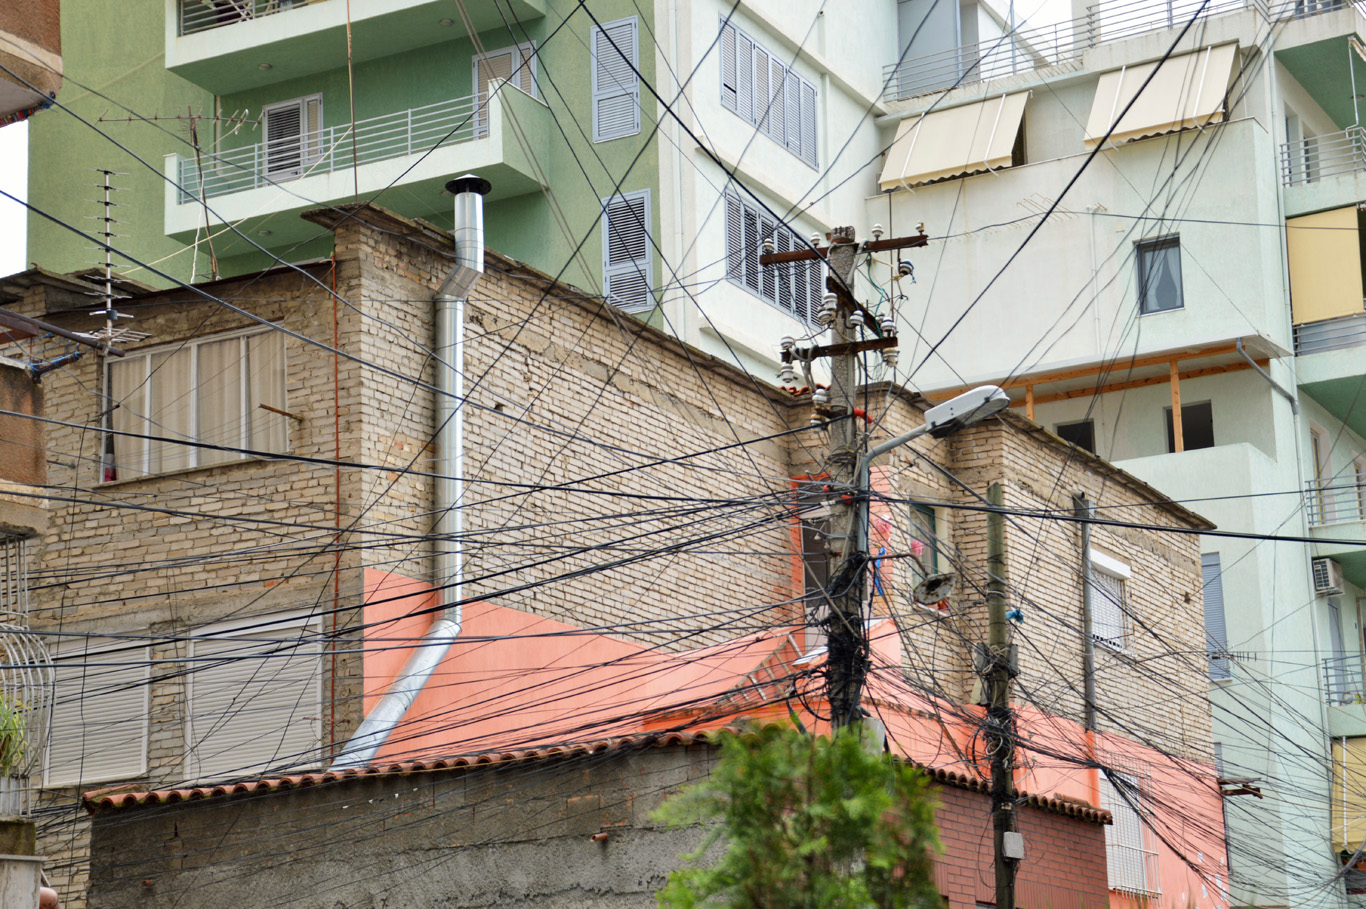 Wires resembling South American cities